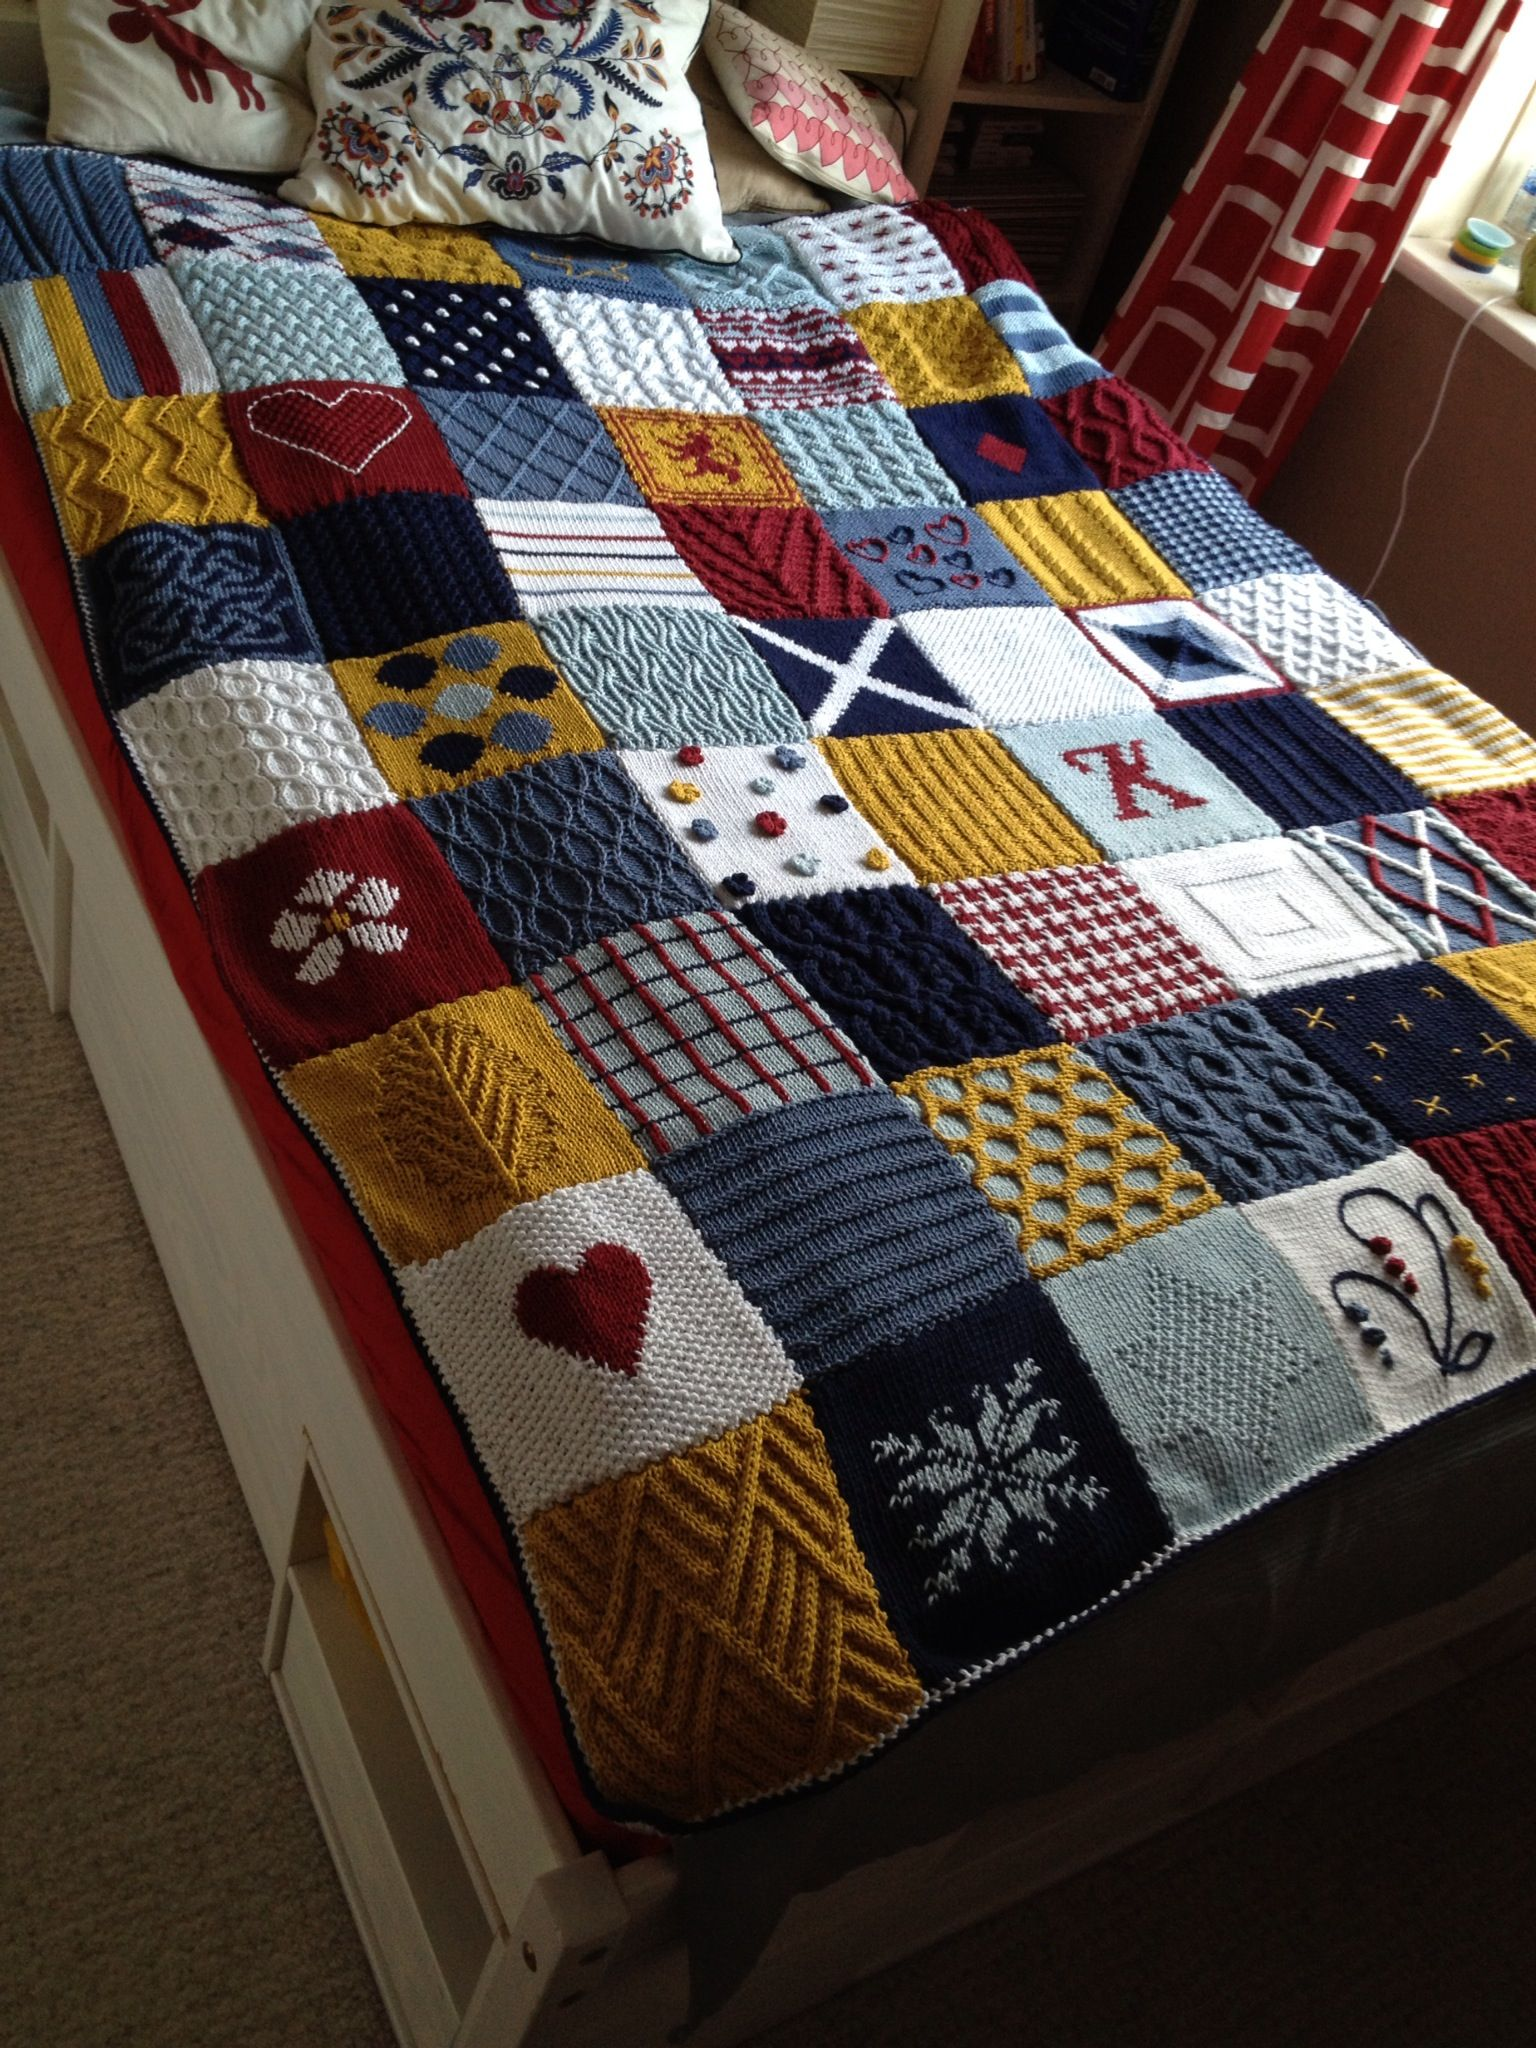 Knitting Pattern For A Patchwork Blanket : Knit Patchwork Blanket Knitting Pinterest